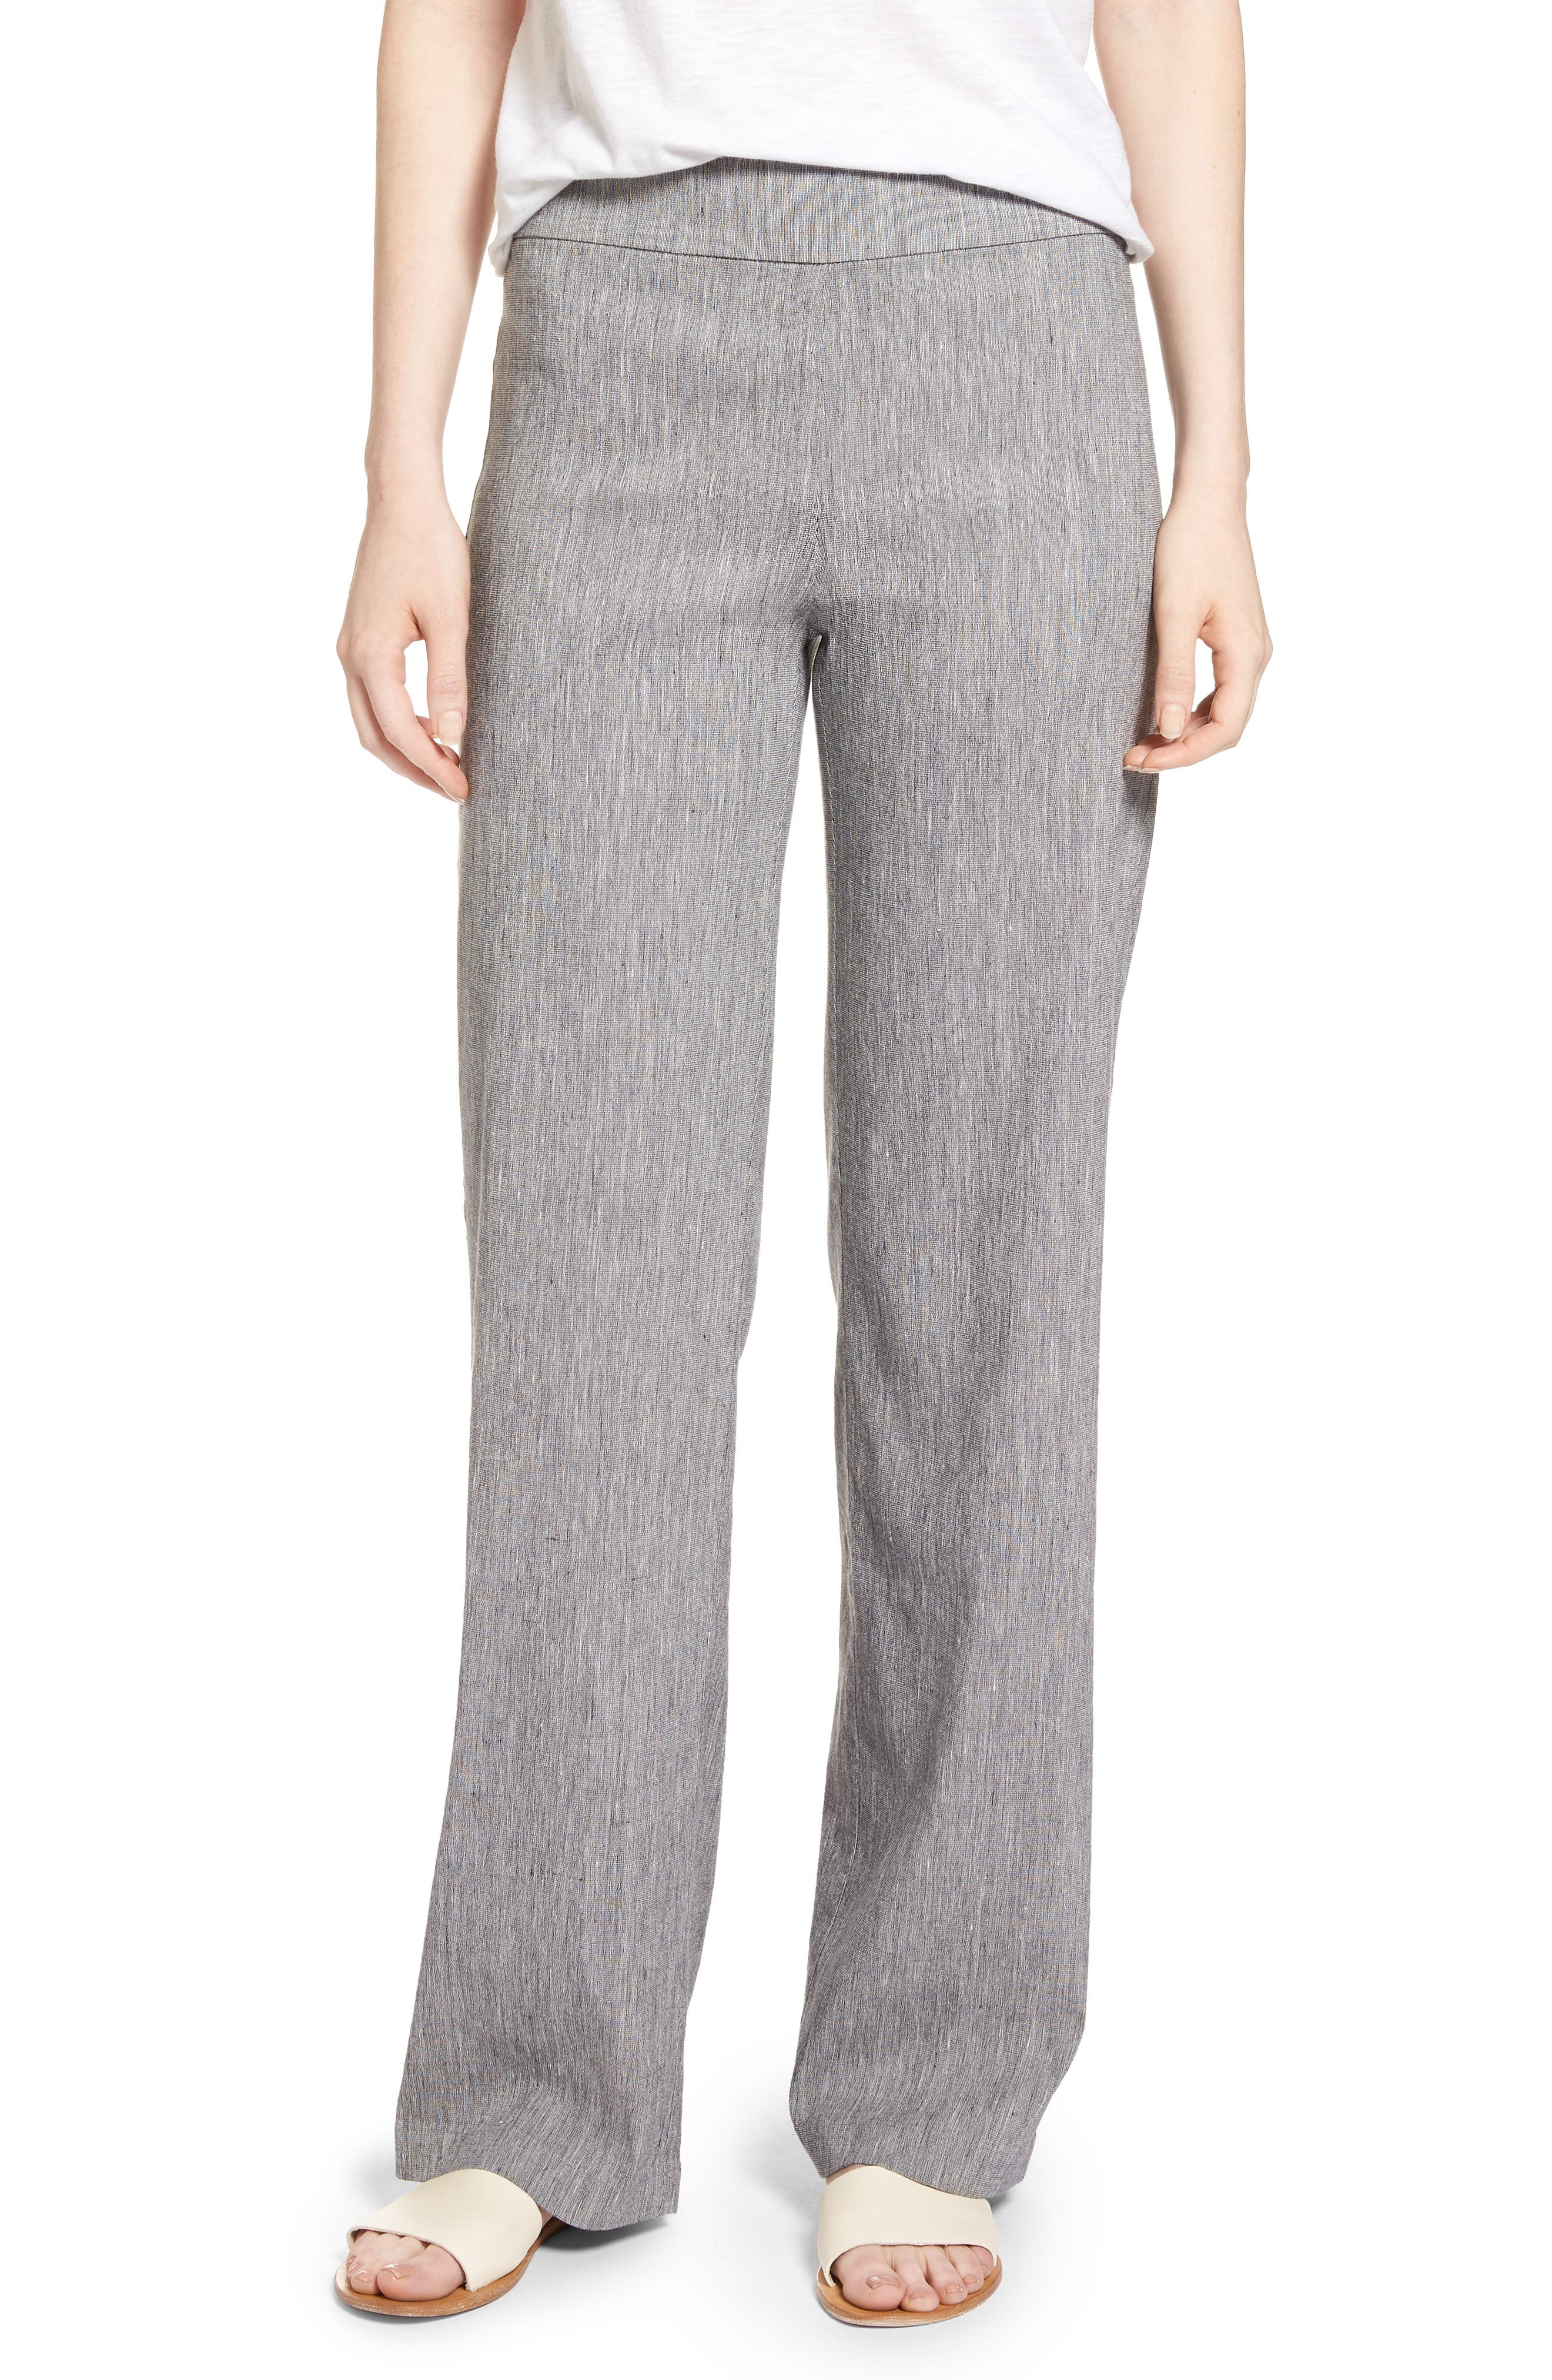 Here or There Linen Blend Pants,                             Main thumbnail 1, color,                             099